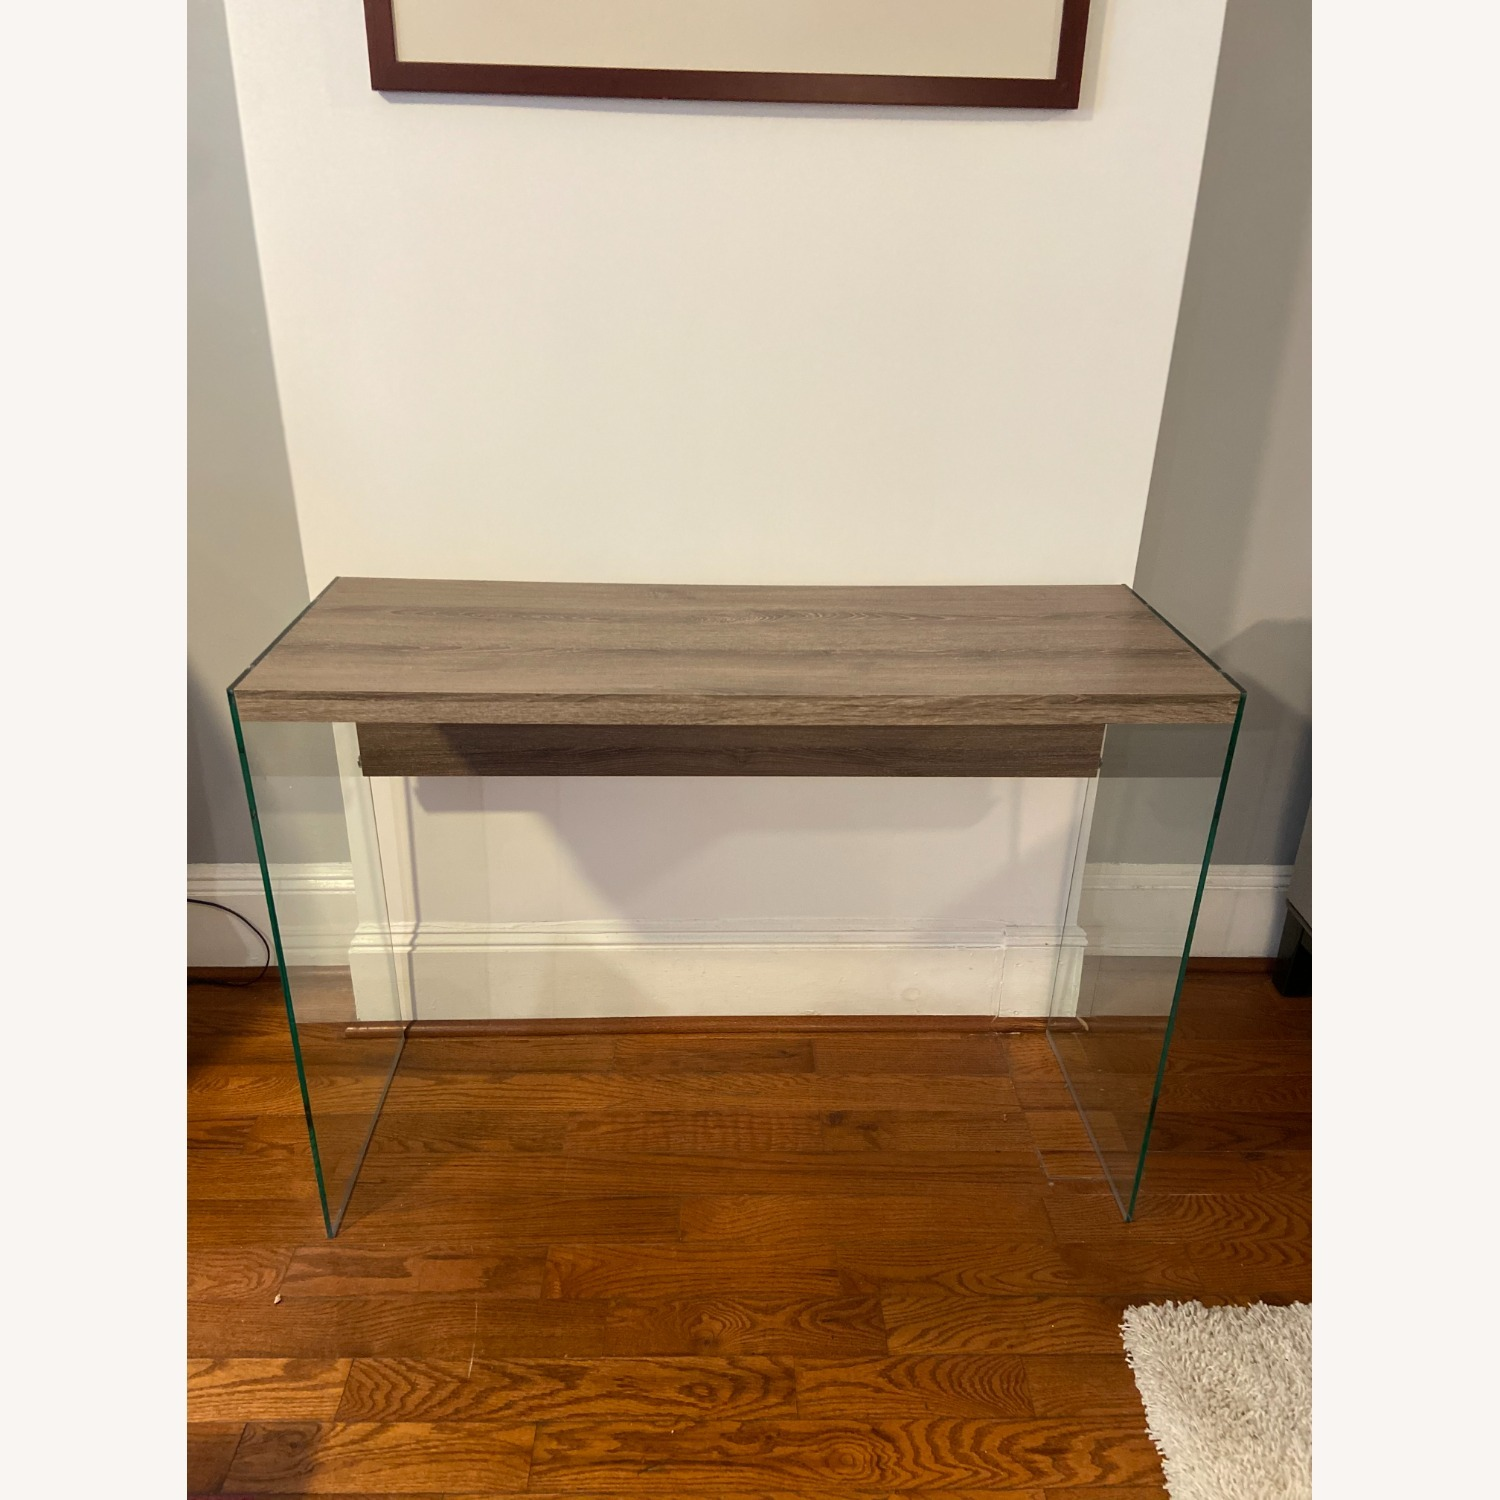 Contemporary Glass / Wood Veneer Table Console - image-1